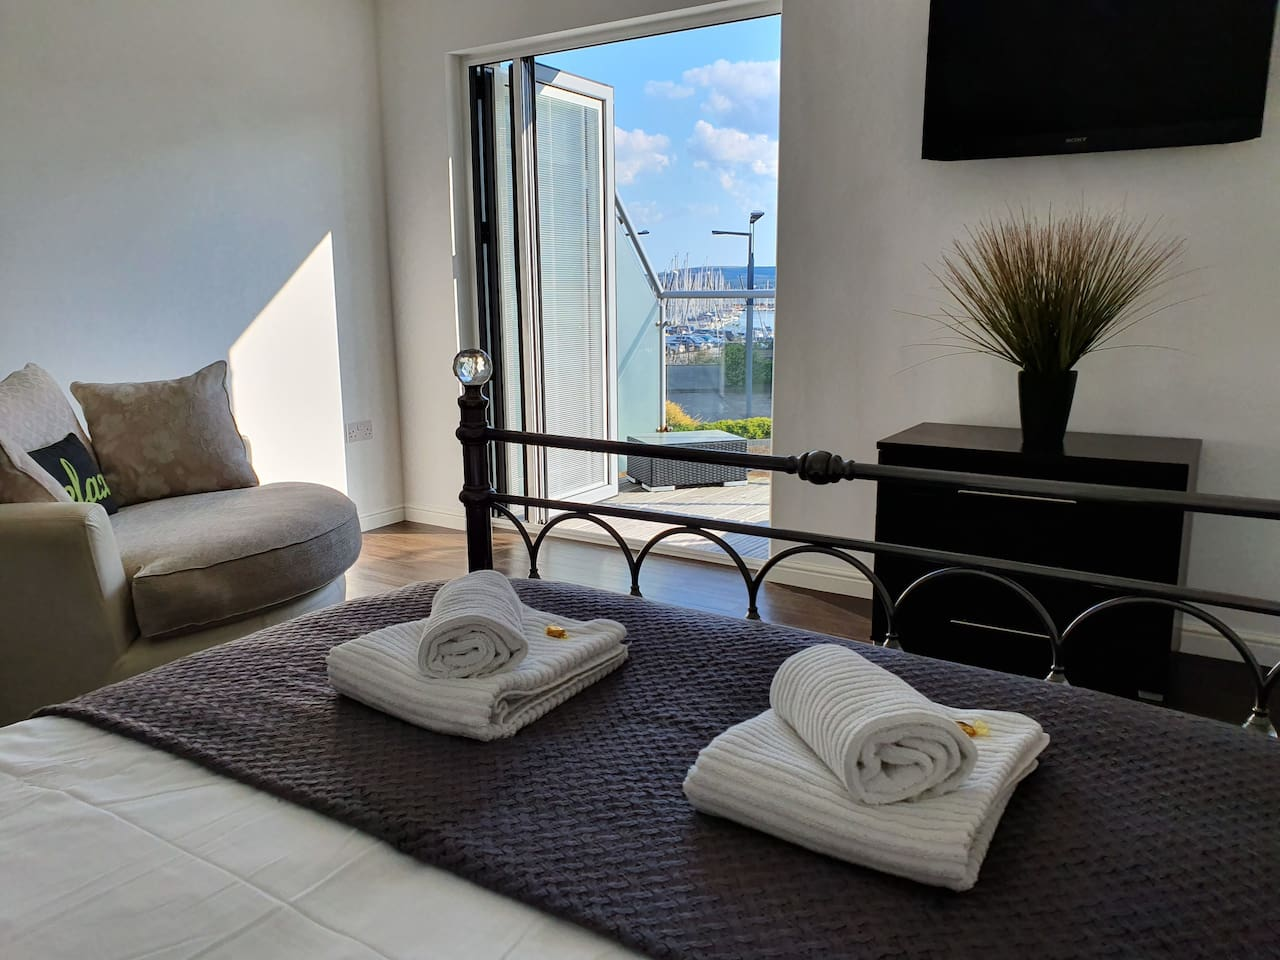 Master-suite views towards the Purbecks, inner Harbour and yacht club.